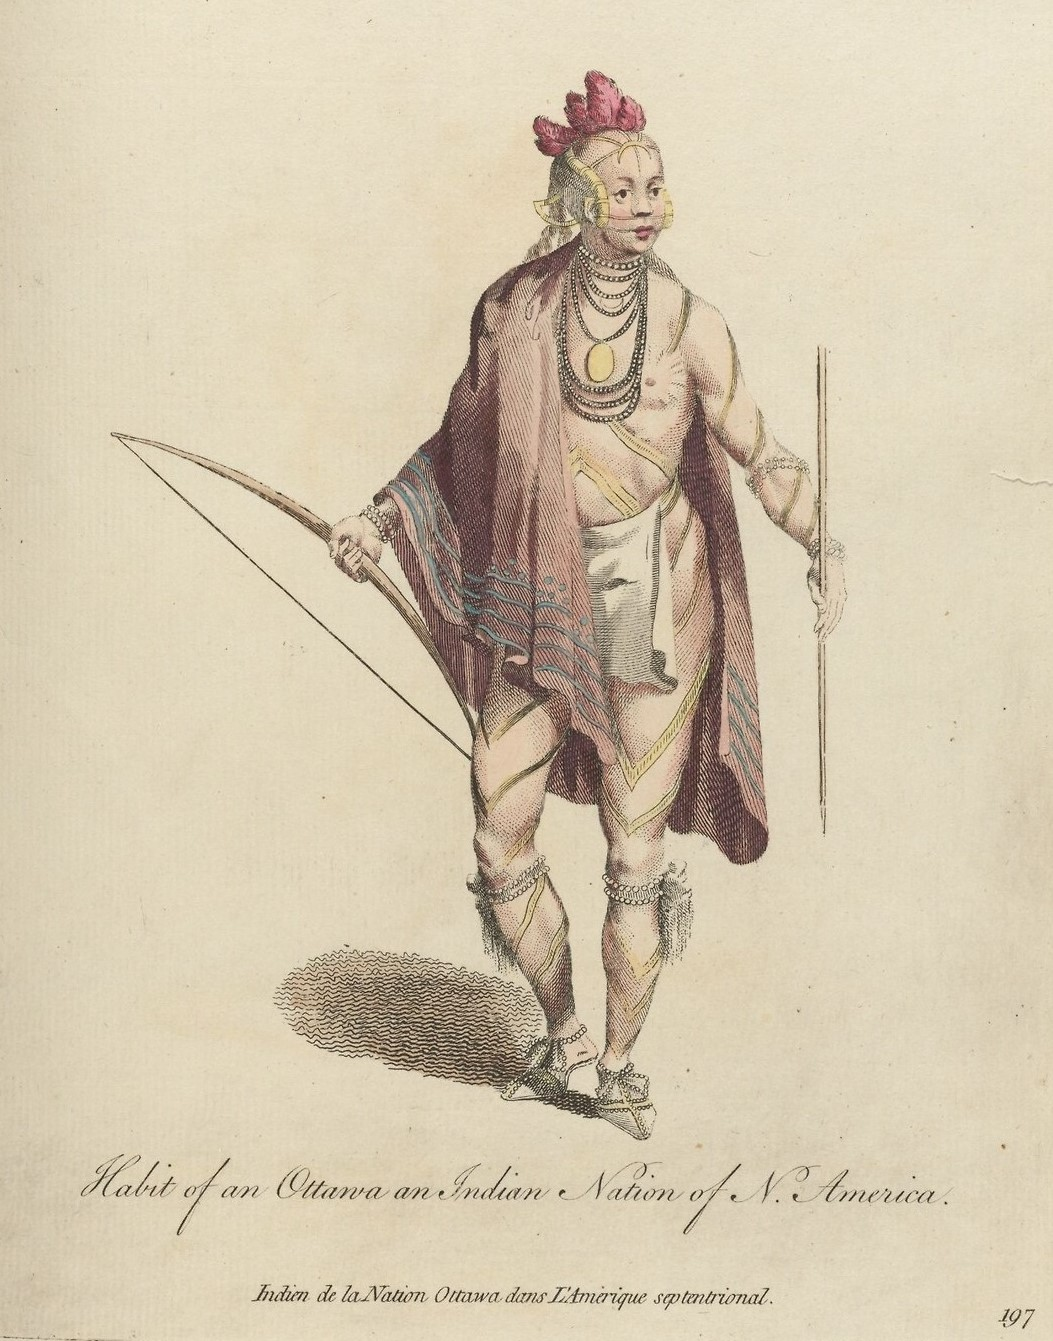 """""""Habit of an Ottawa an Indian Nation of N. America"""". From A collection of the dresses of different nations, antient and modern, particularly old English dresses, Vol 4: Plate 197. HEW 14.7.6, Houghton Library, Harvard University."""